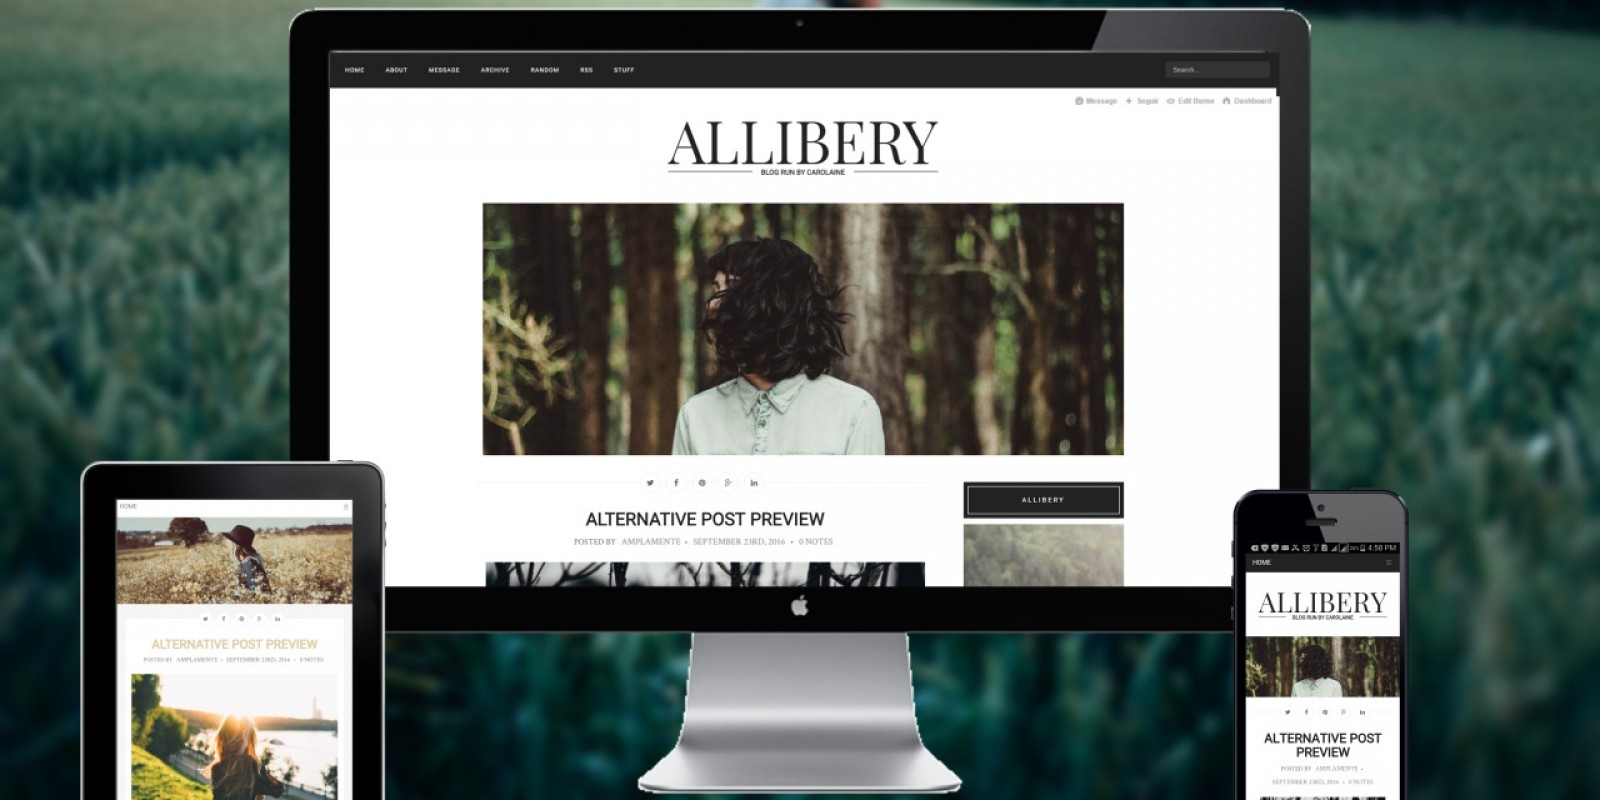 Allibery - Tumblr Theme